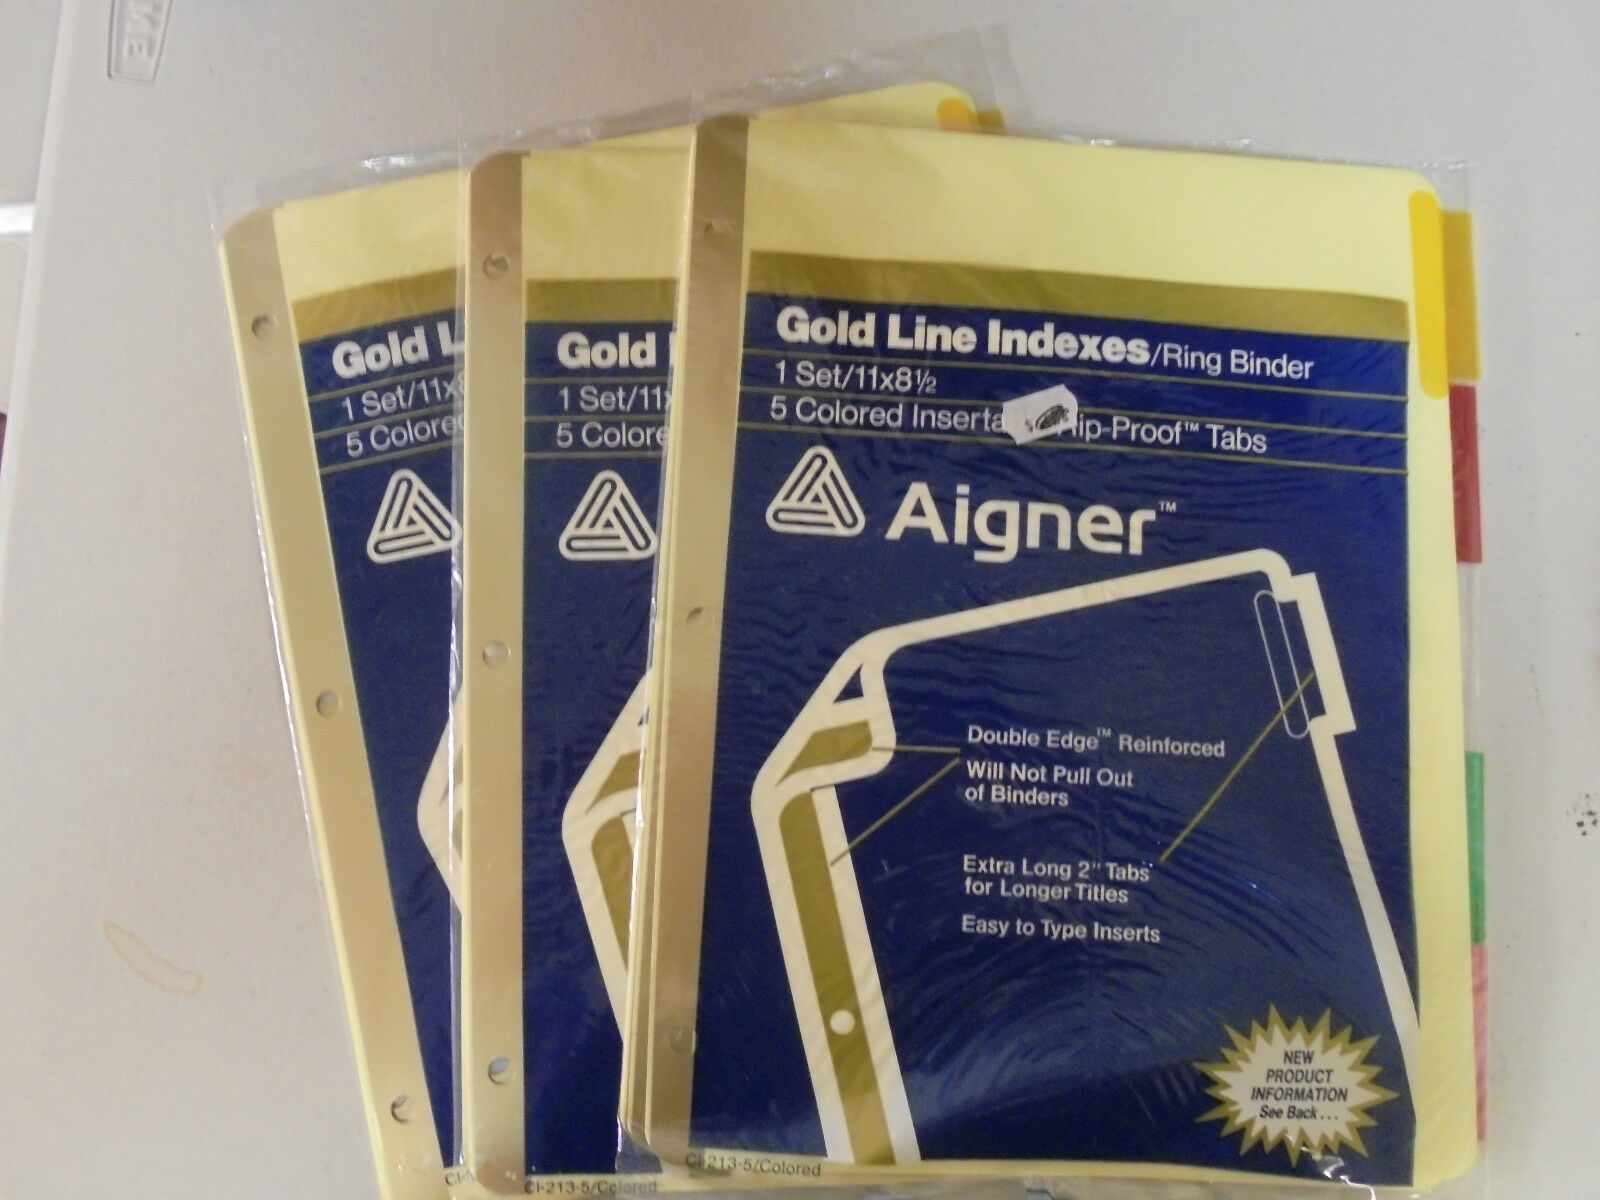 3 Aiger Gold Line 5 Colored Insert Rip-Proof 2